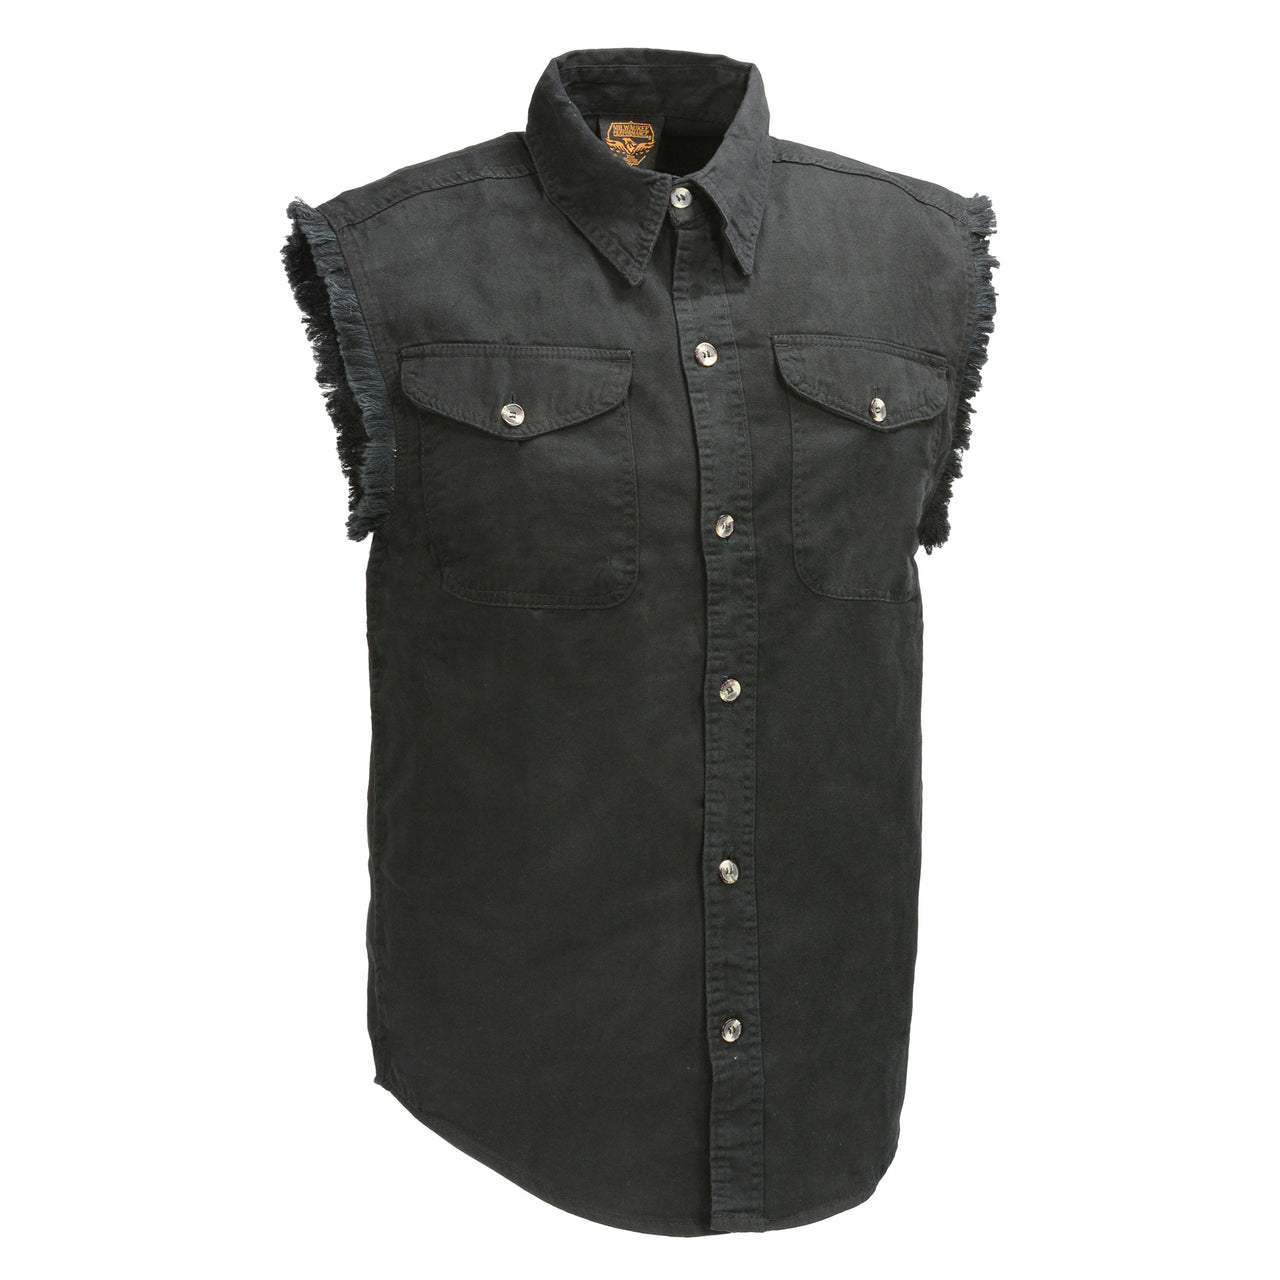 Men's Black Lightweight Sleeveless Denim Shirt - HighwayLeather